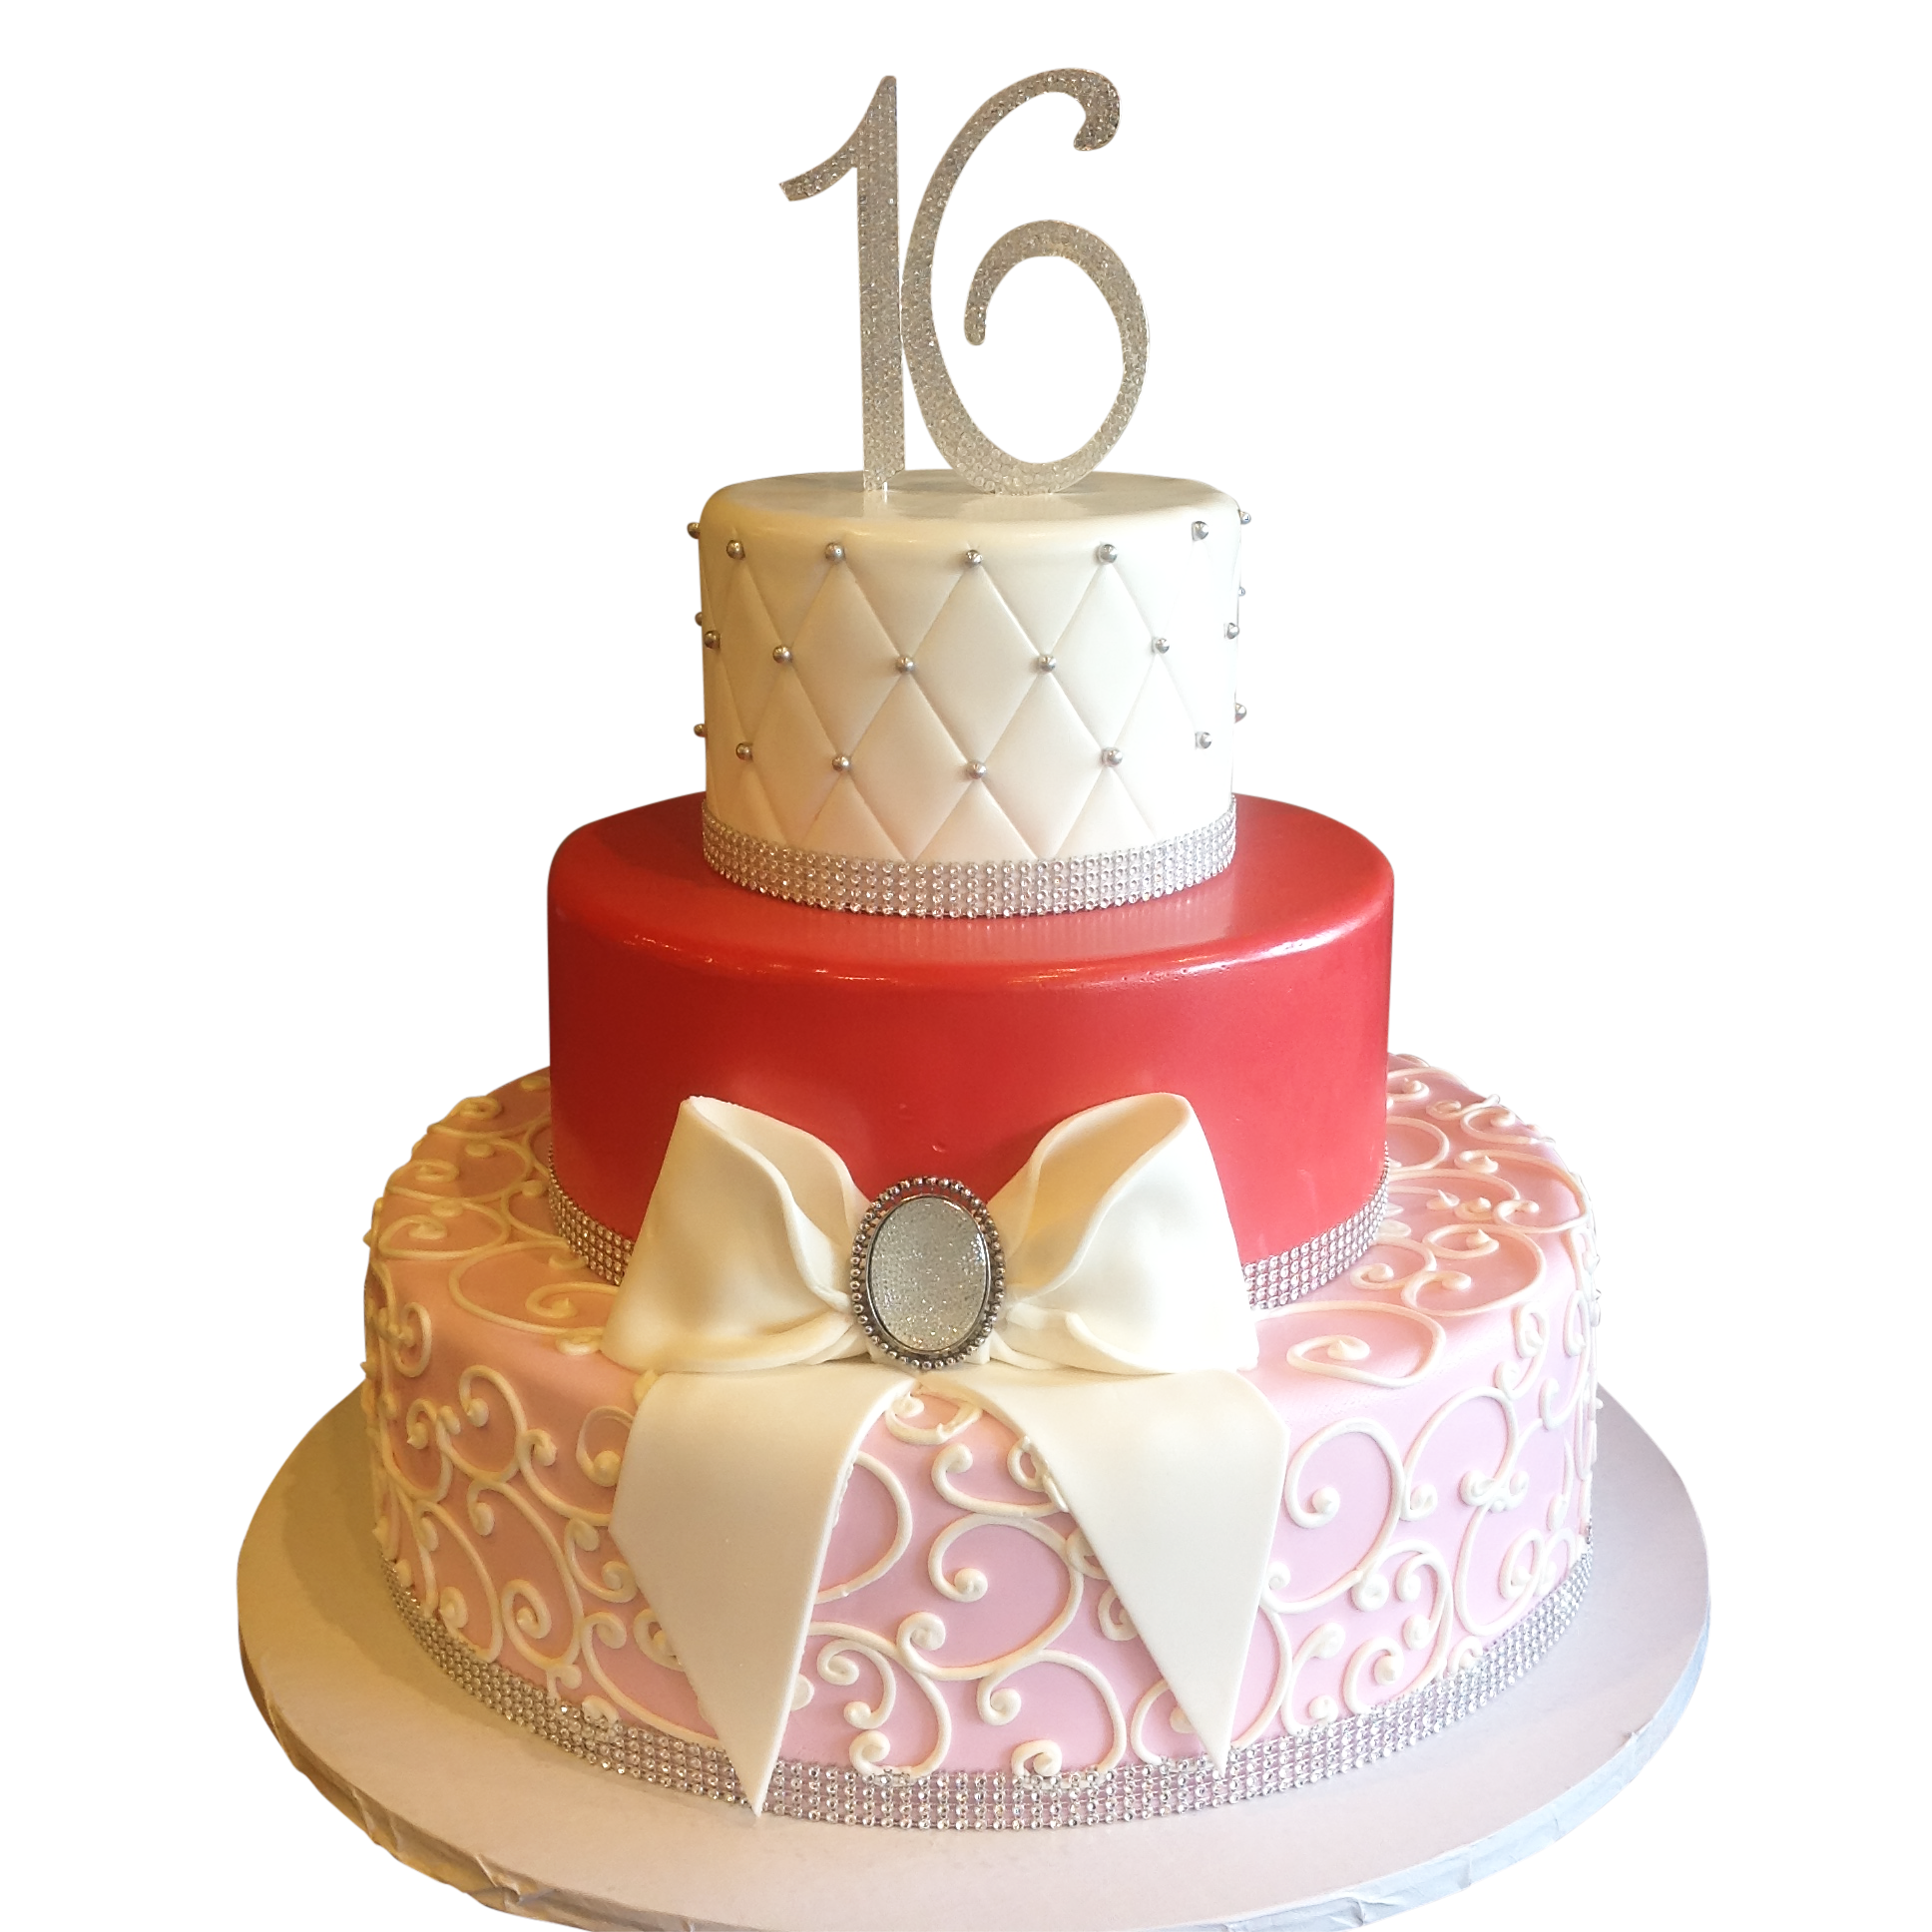 Birthday cakes for women png. Birthdays sweet impressive from